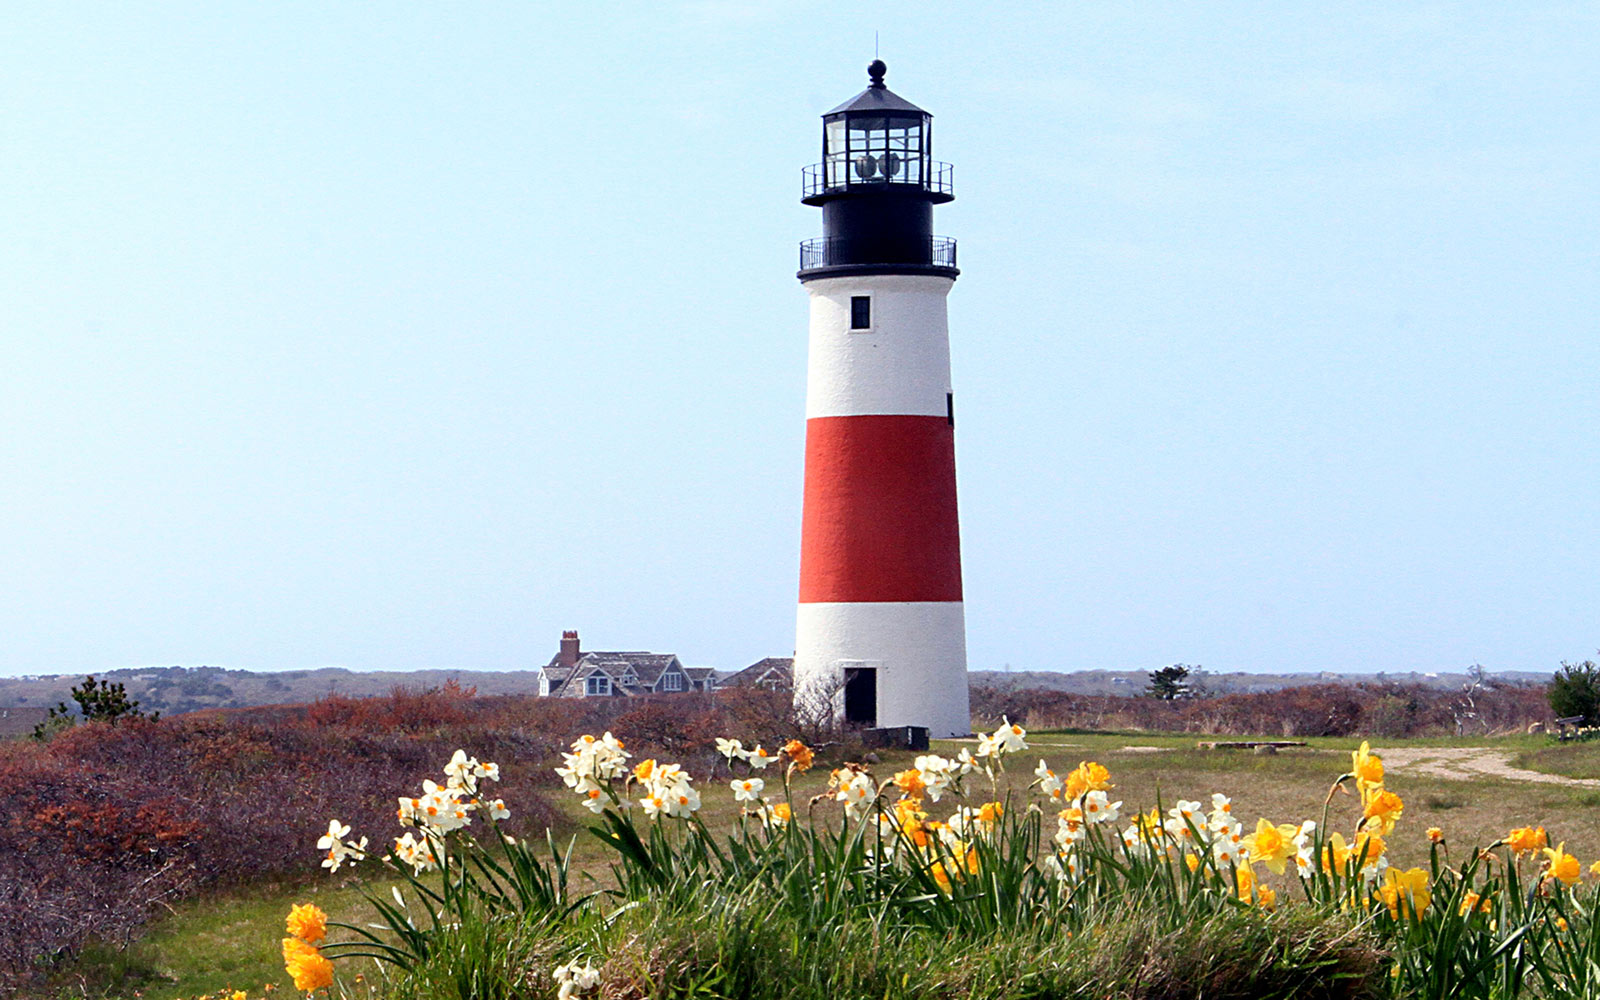 Daffodil Festival in Nantucket, Massachusetts